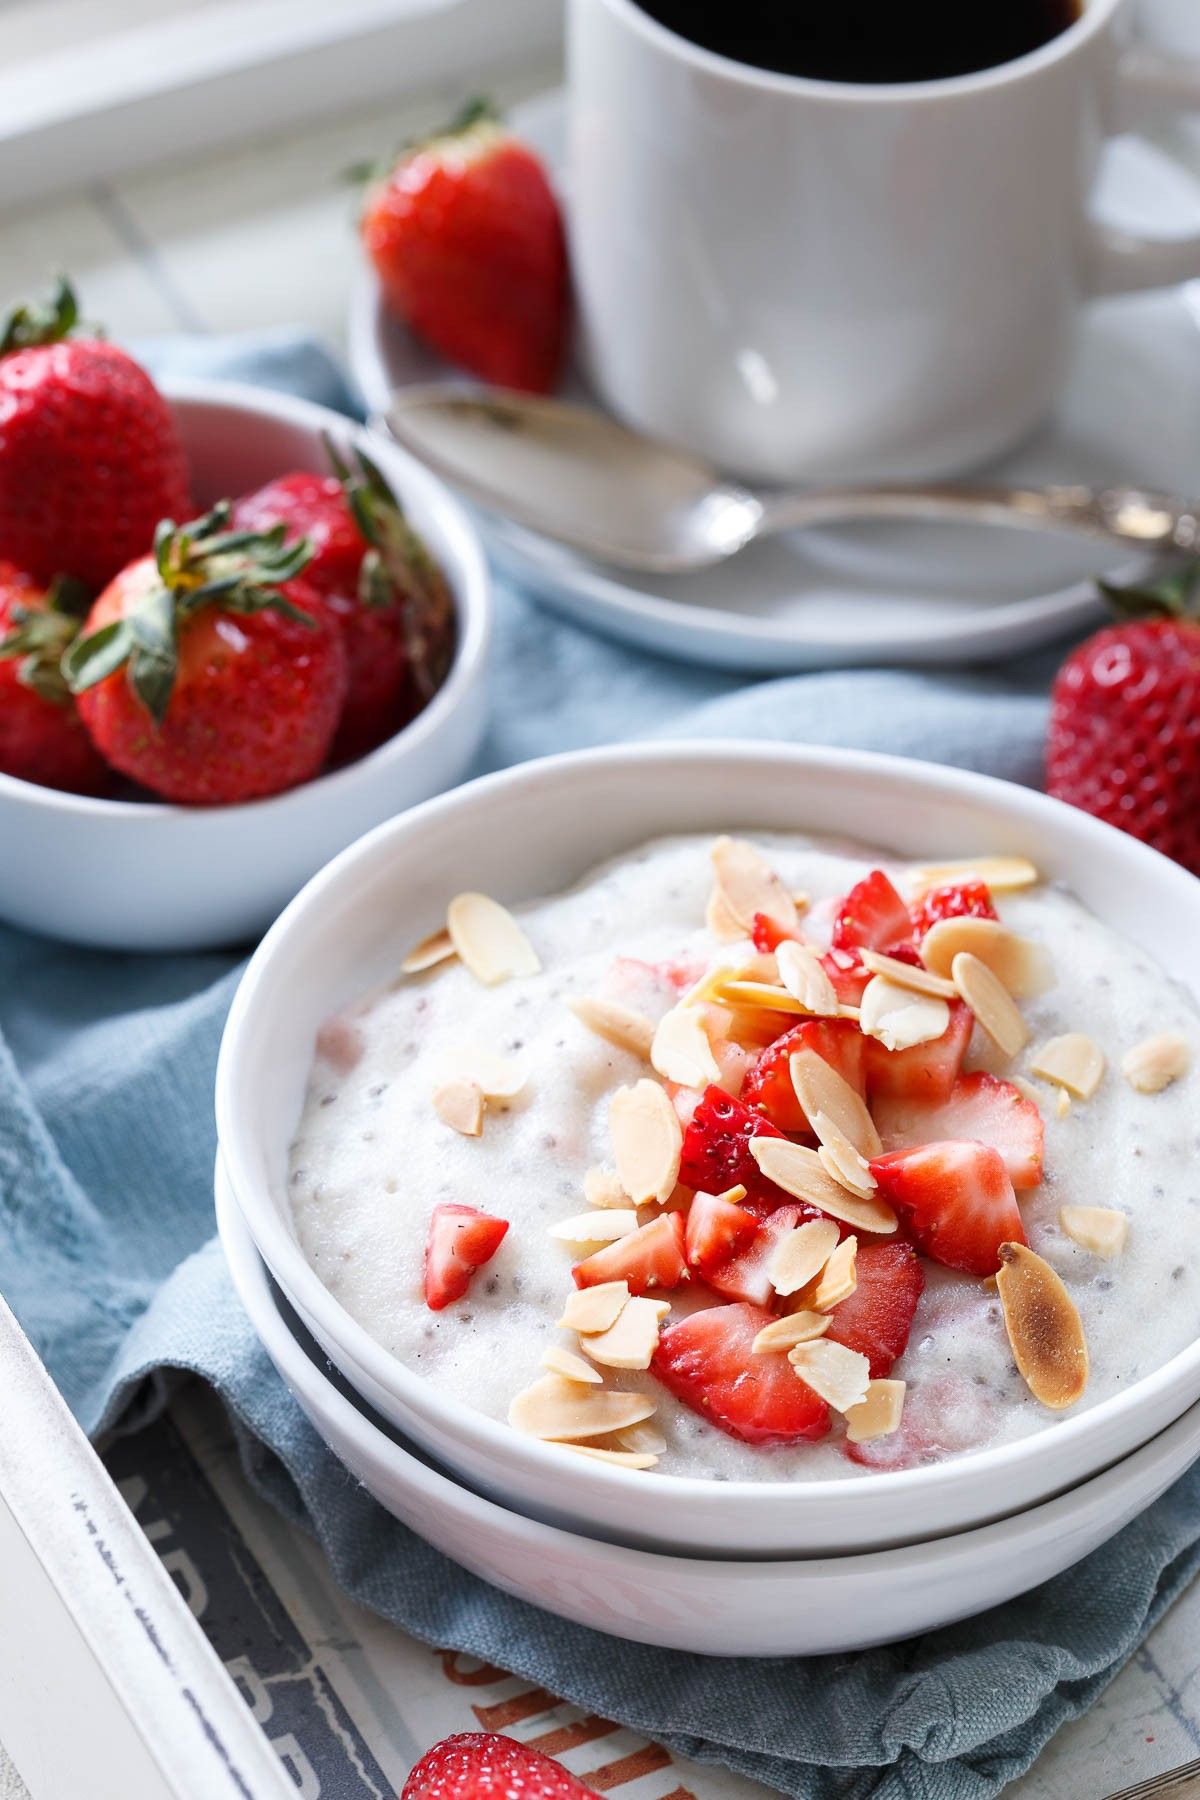 5 Reasons to Eat a Protein-Packed Breakfast